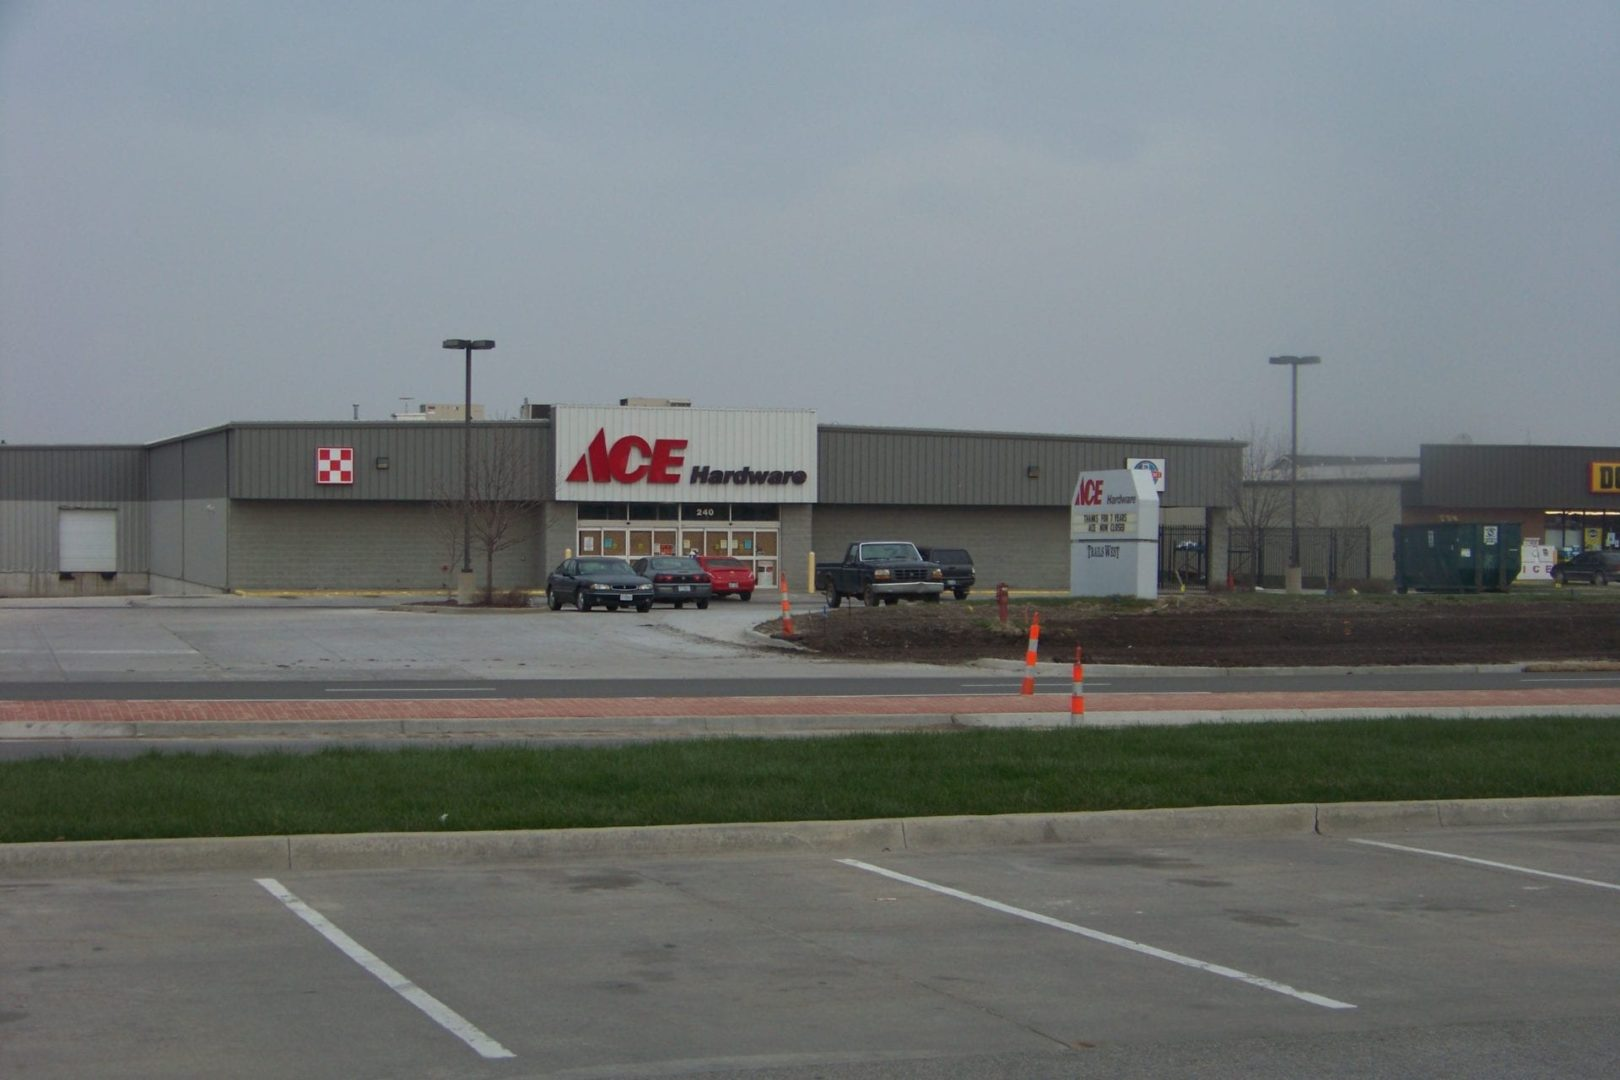 Ace Hardware to open with old management, new ownership